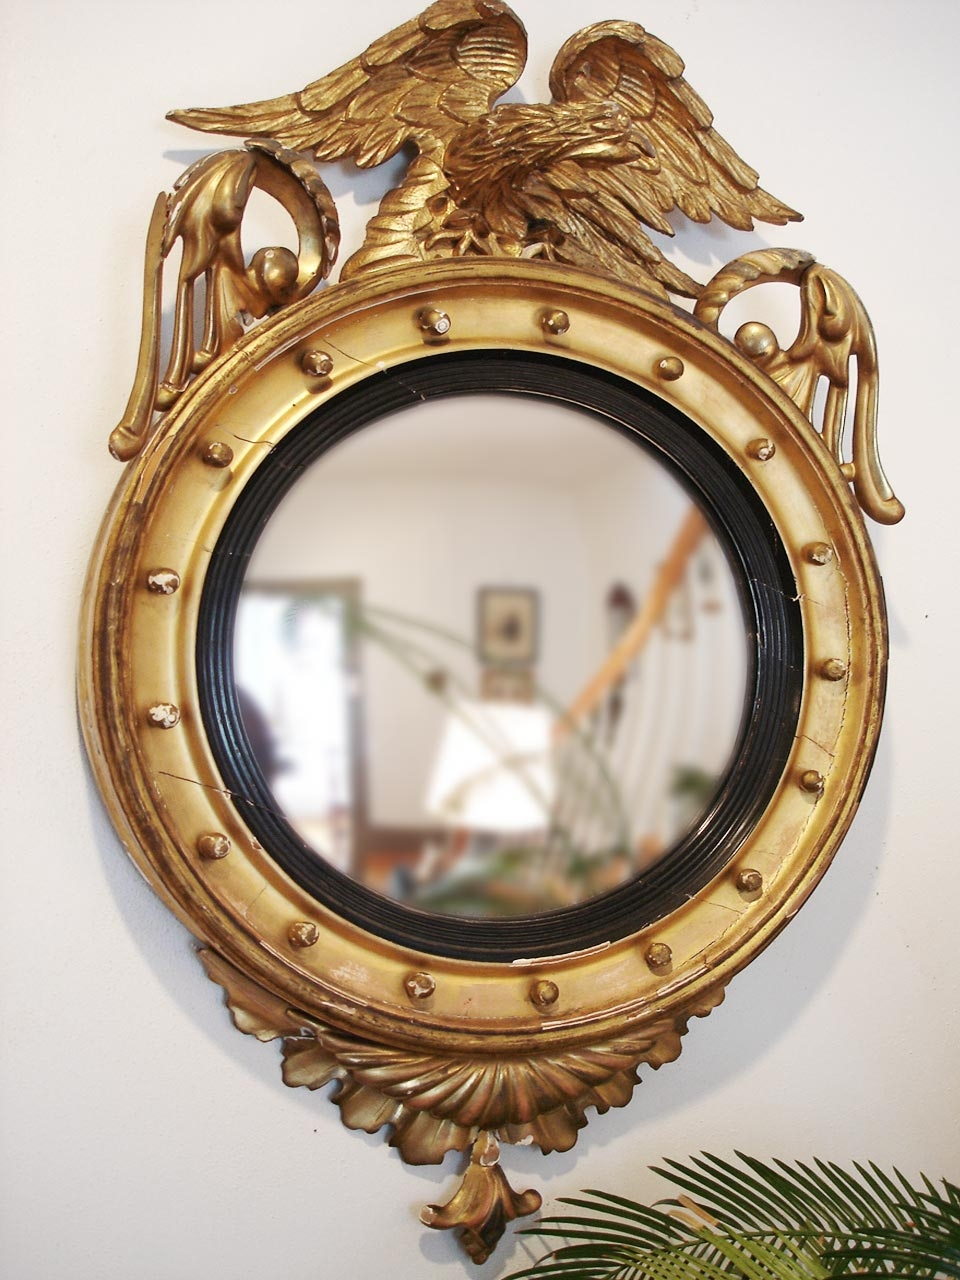 Eagle Federal Convex Mirror Spray Paint Black Or Different Color Throughout Antique Convex Mirrors For Sale (Image 8 of 15)